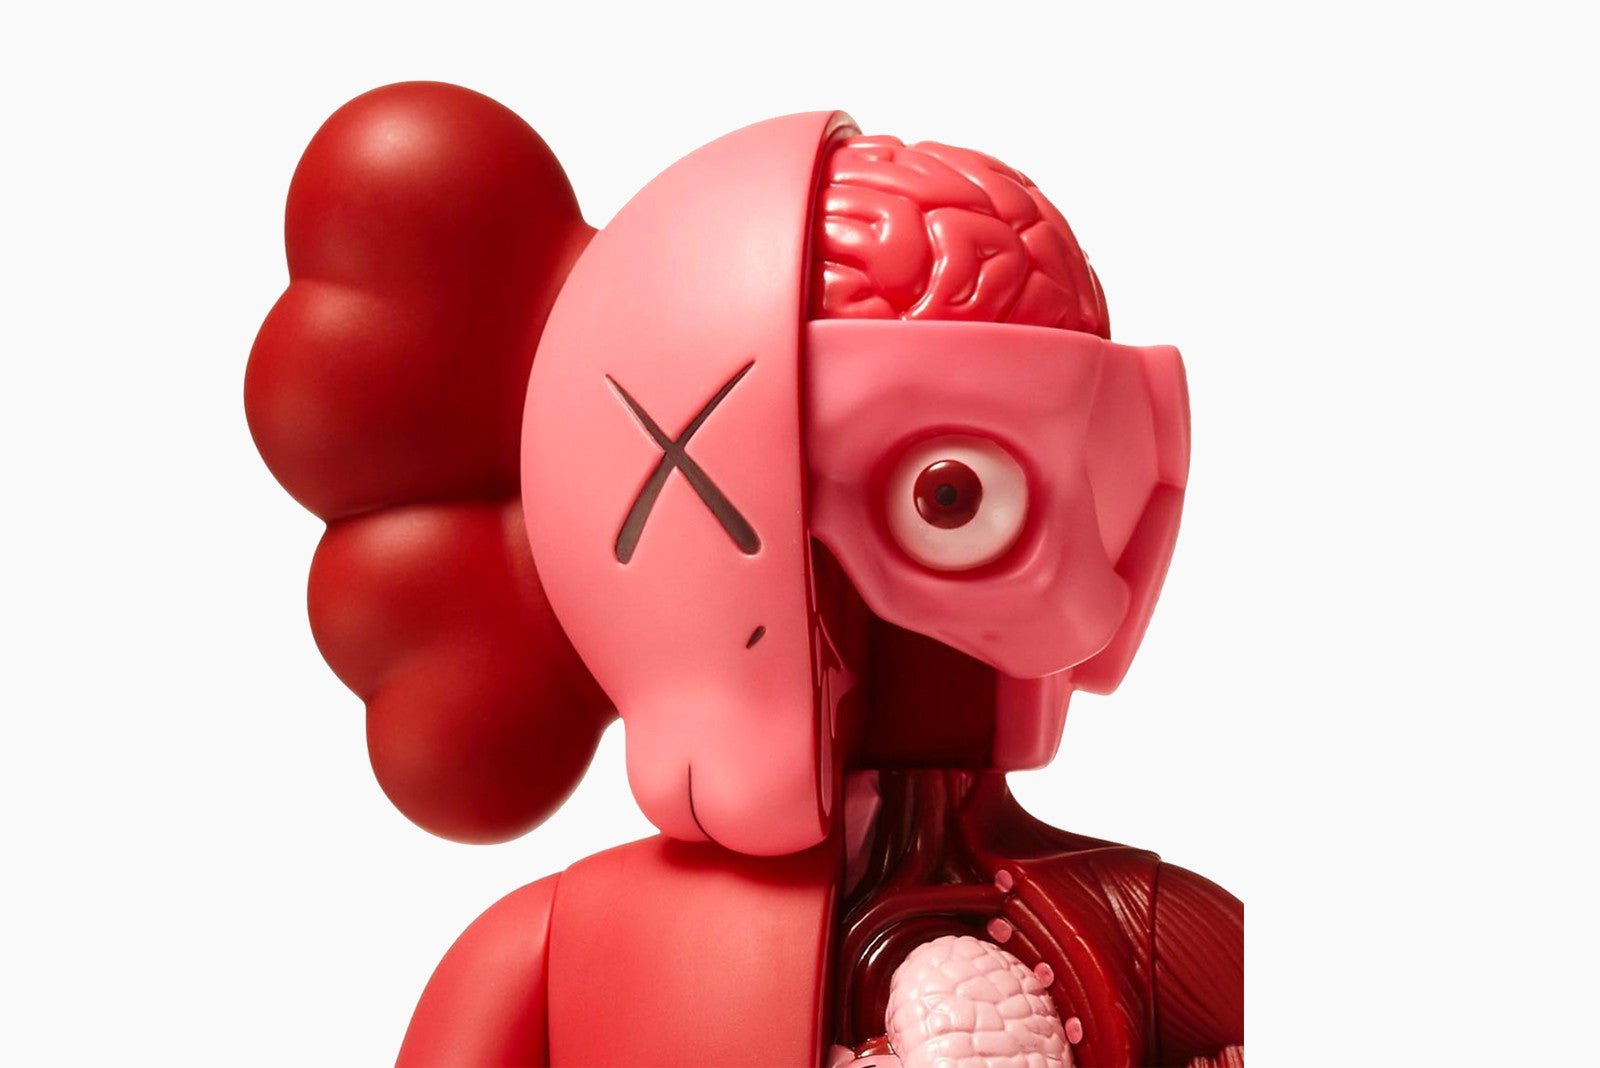 Medicom Toy - Kaws Companion Blush Regular + Flayed Version Vinyl Figures - Release Date: 6.2.17 (12 PM EST)